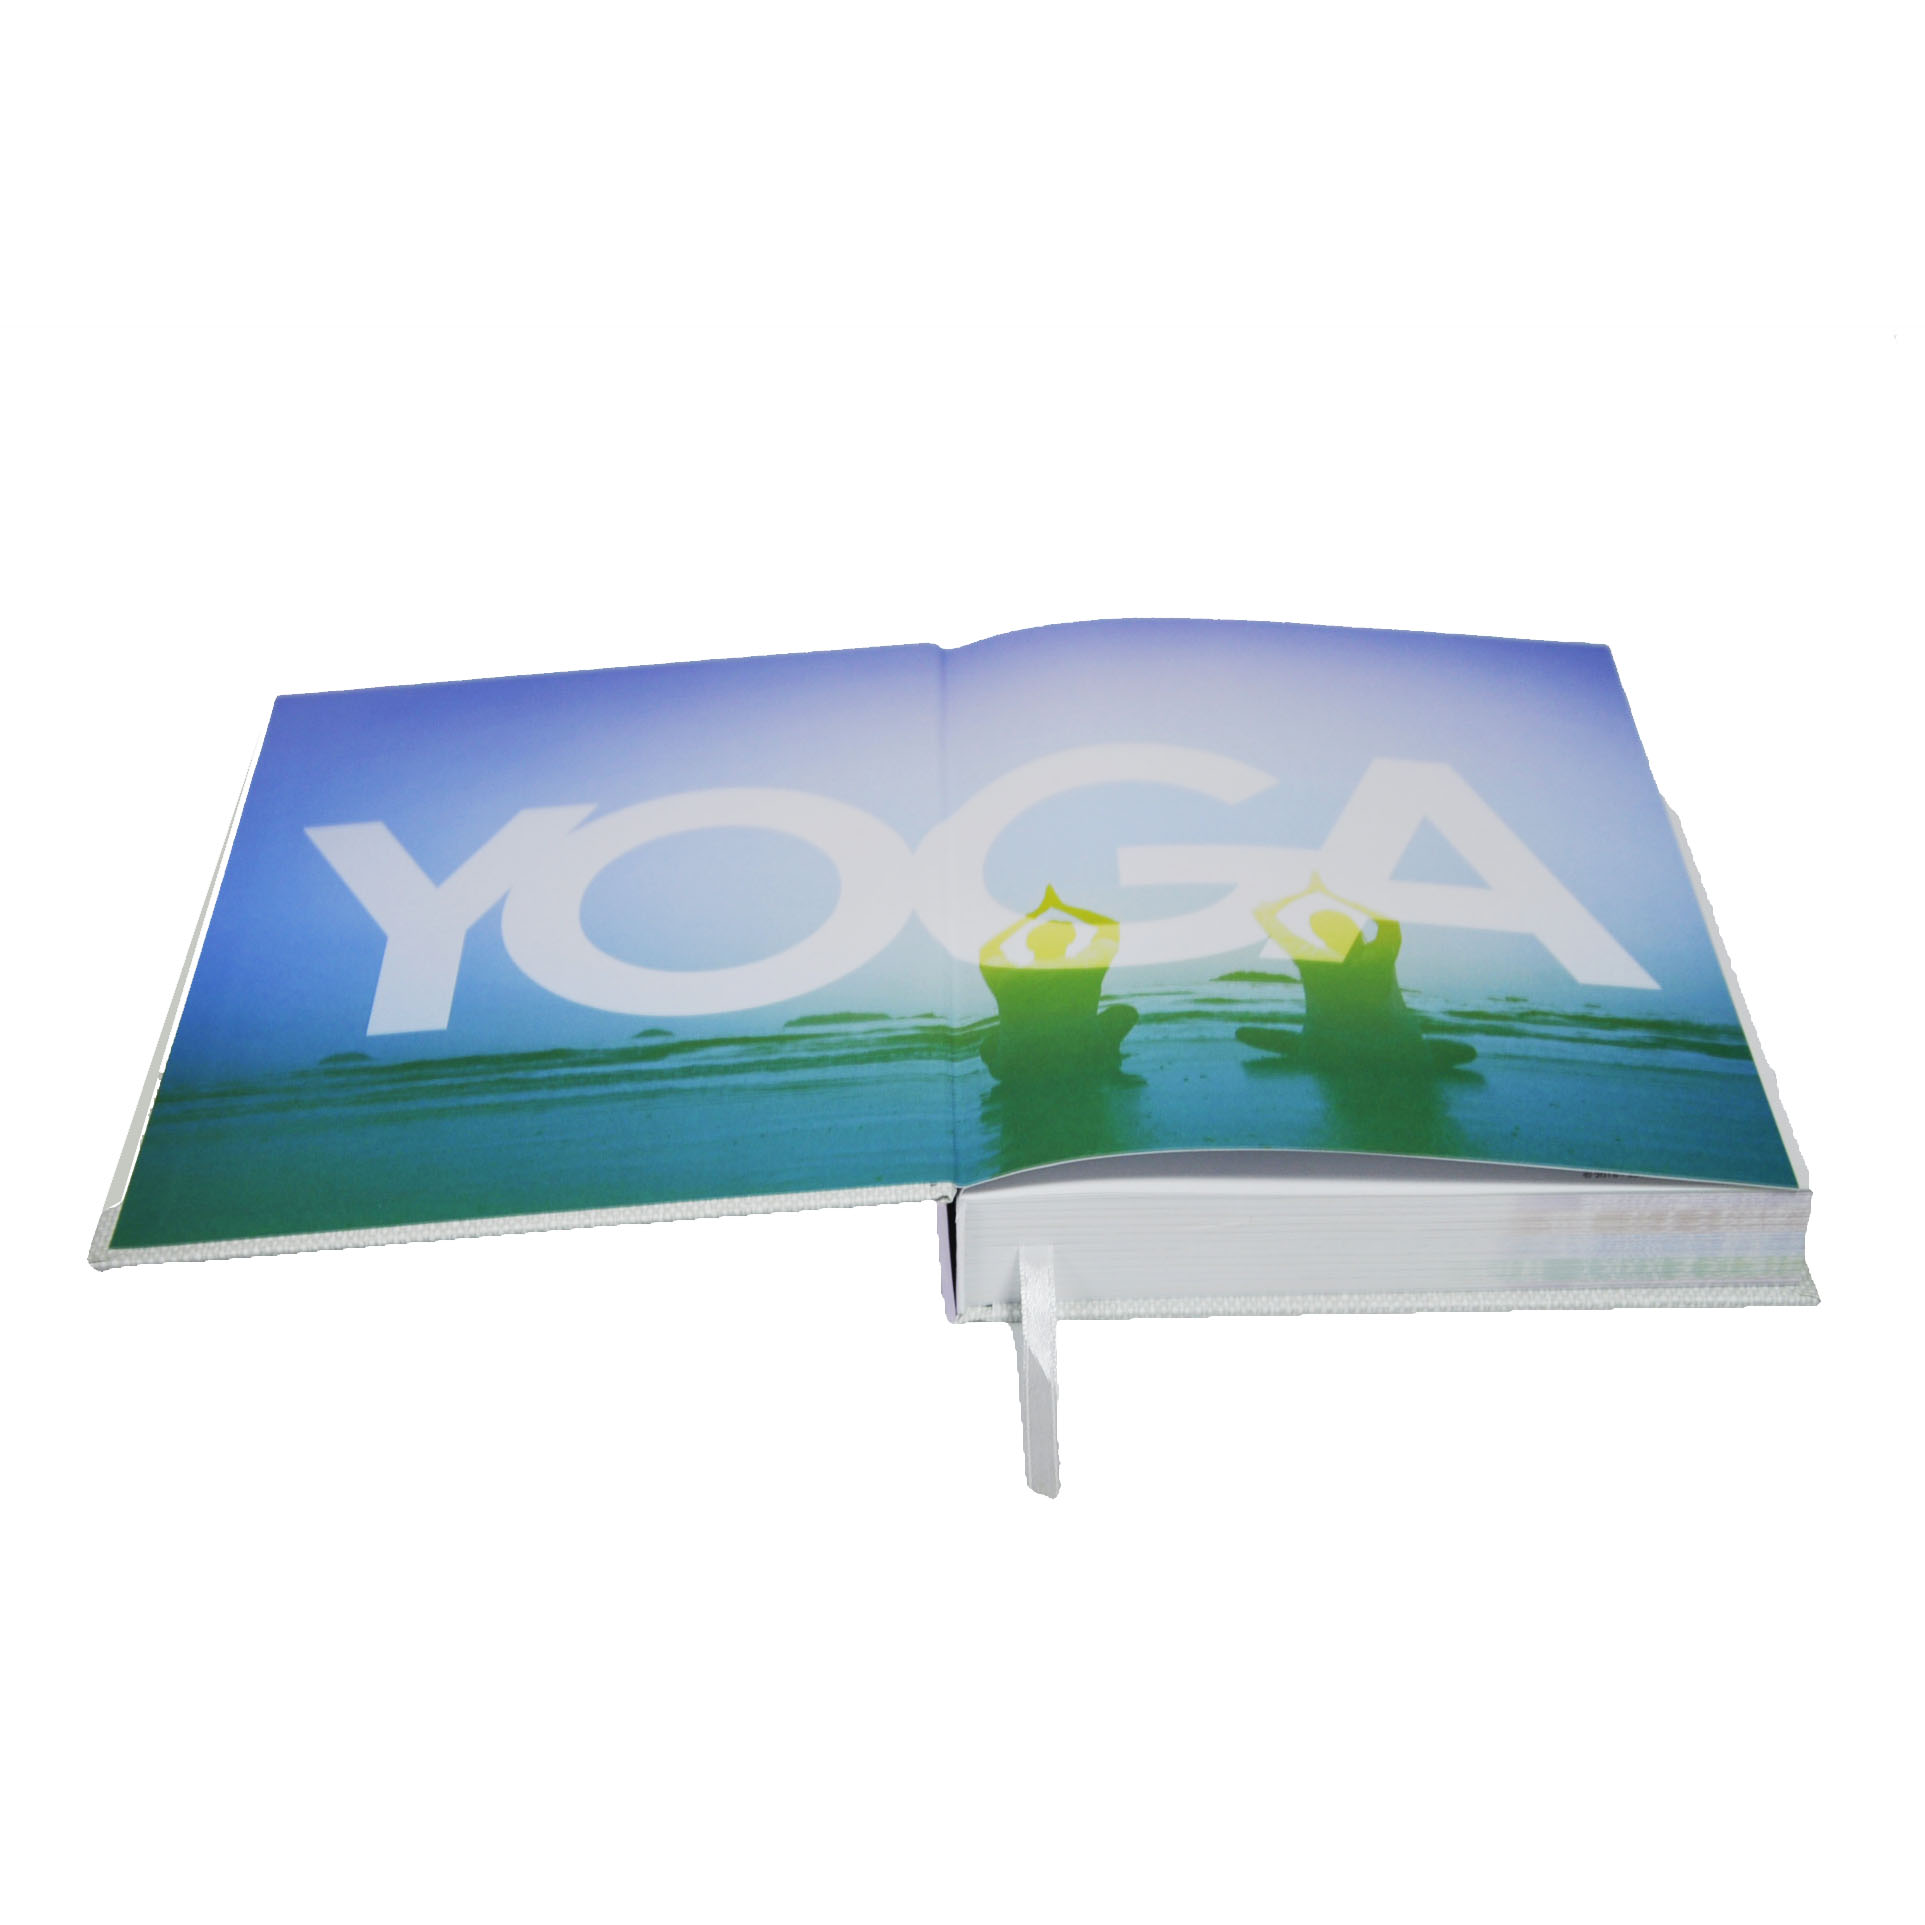 Shenzhen Promotional Printing Full Color Comics Japoneses Para Adultos